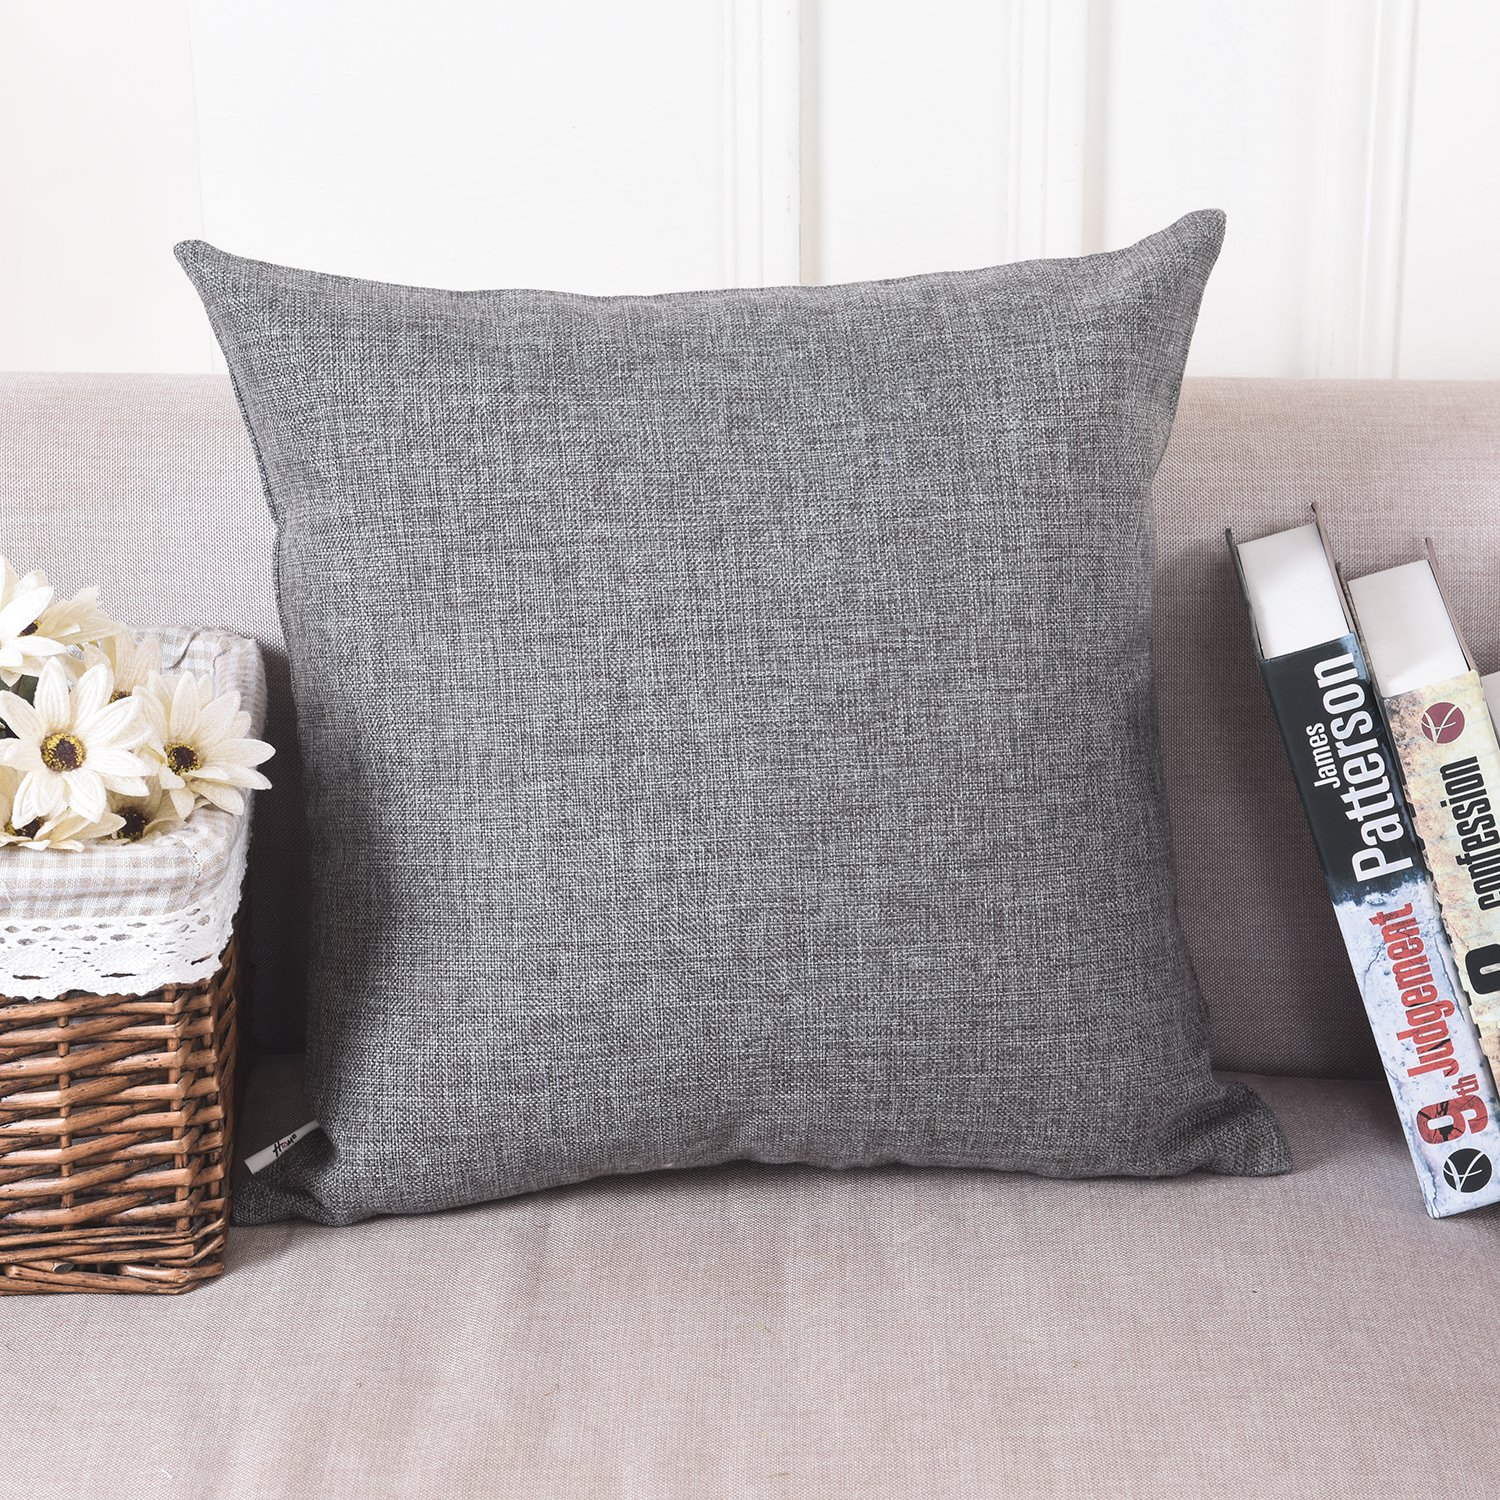 HOME BRILLIANT Soft Solid Linen Euro Sham Throw Pillow Cover for Couch, 24''x24'', Dark Grey